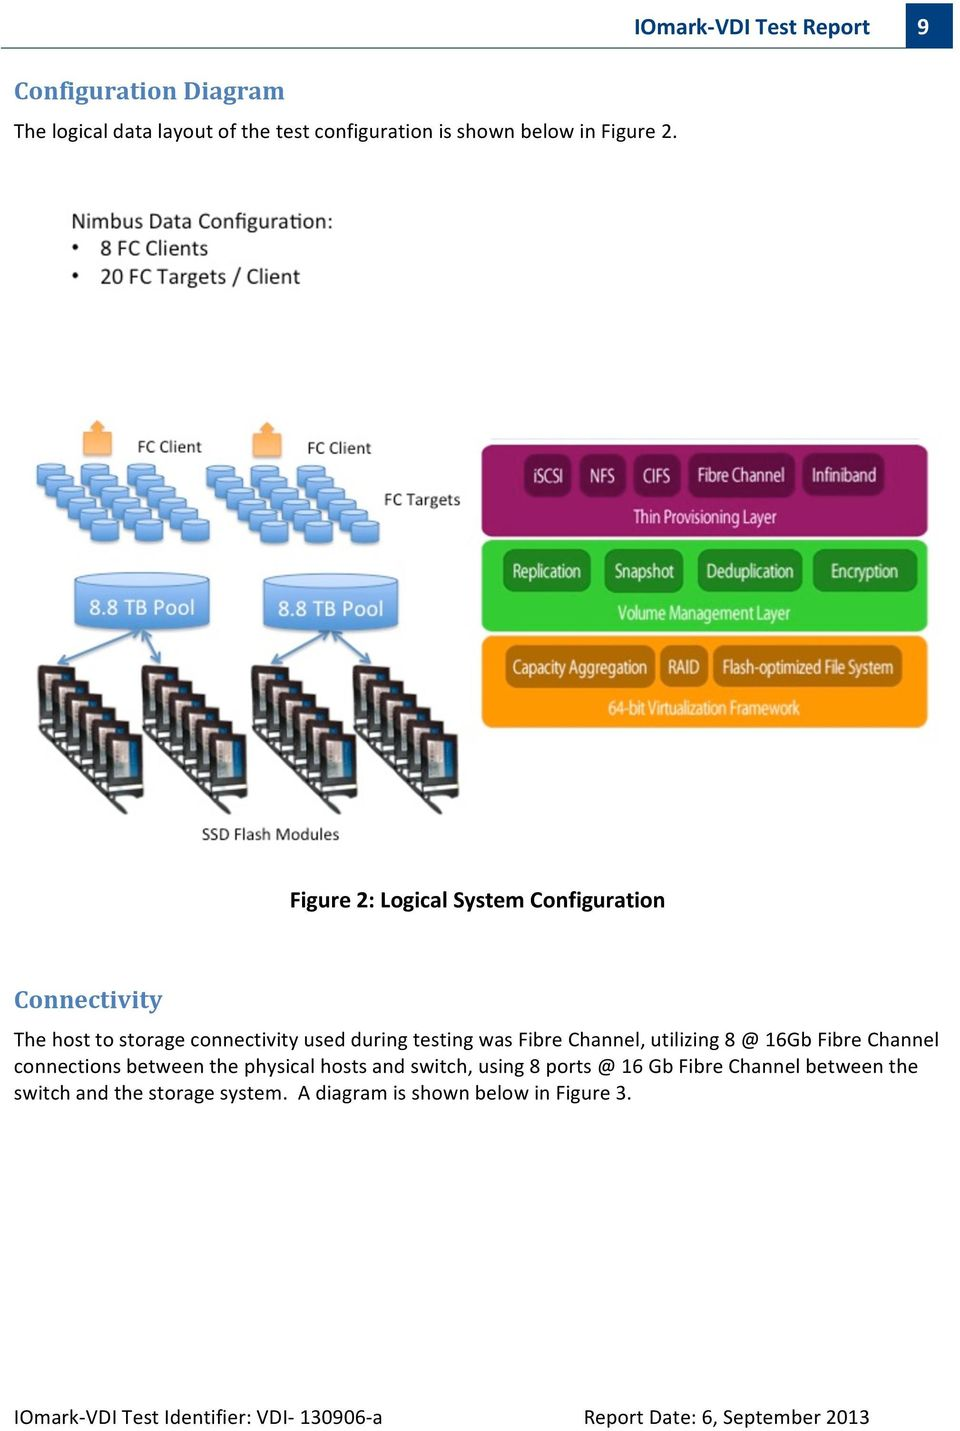 Channel, utilizing 8 @ 16Gb Fibre Channel connections between the physical hosts and switch, using 8 ports @ 16 Gb Fibre